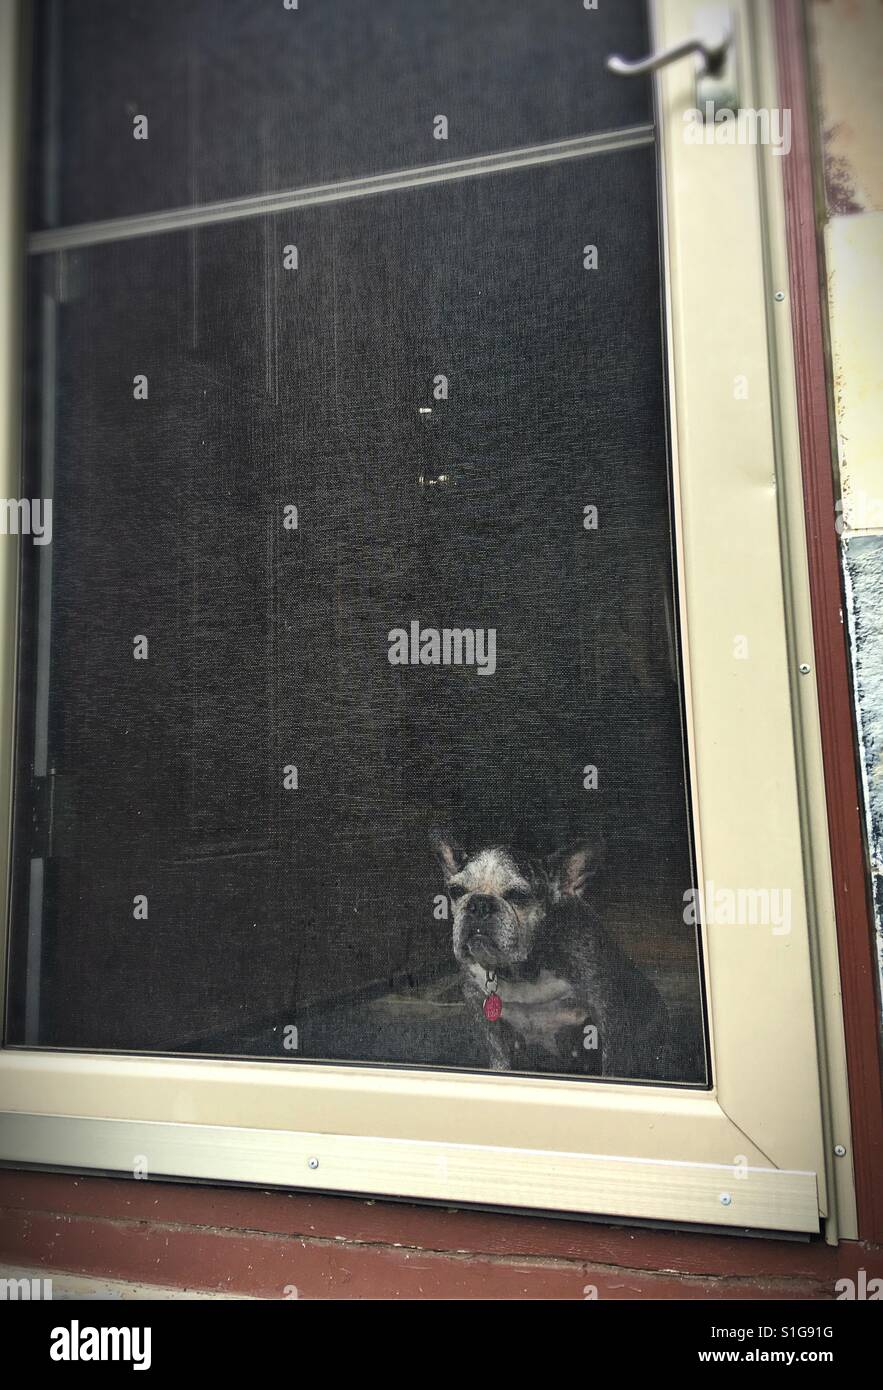 Screen Door Stock Photos Amp Screen Door Stock Images Alamy